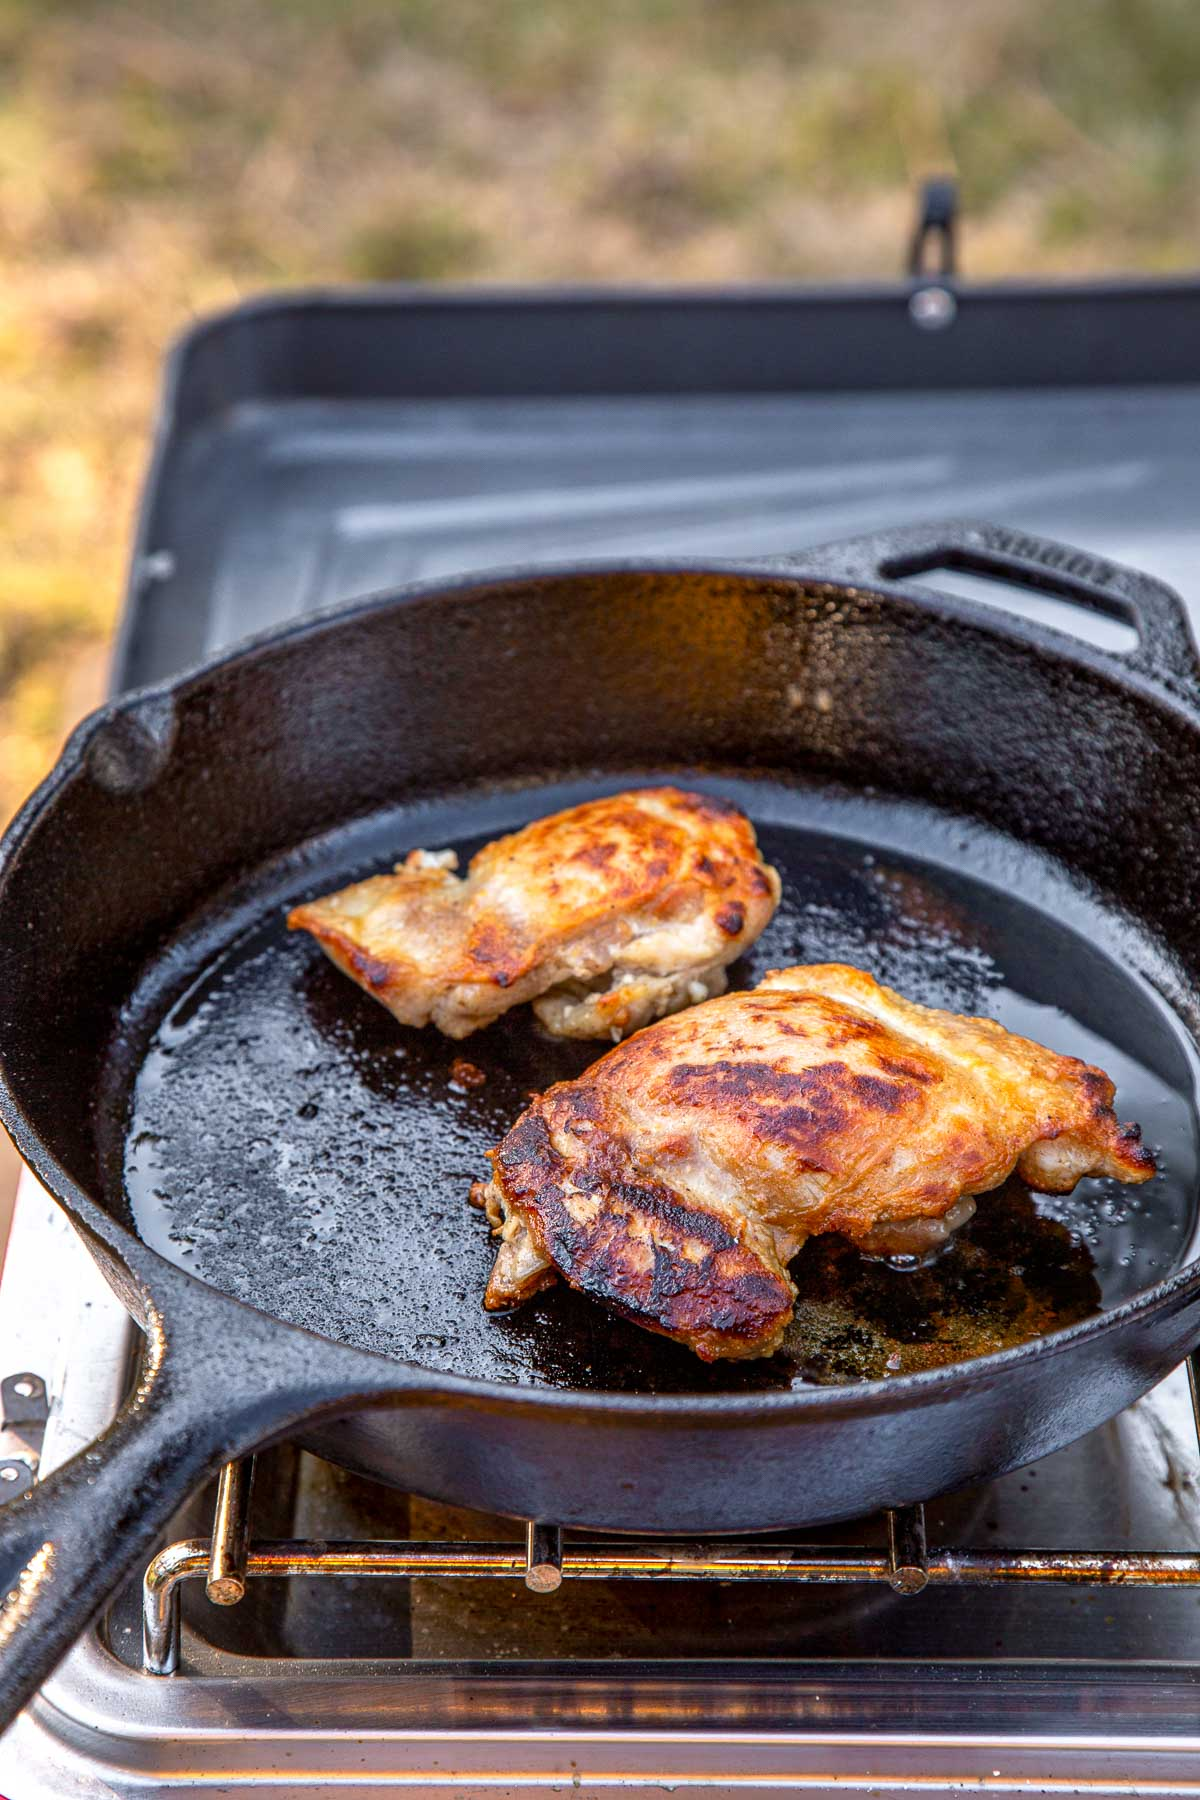 Two browned chicken thighs in a cast iron skillet on a camping stove.